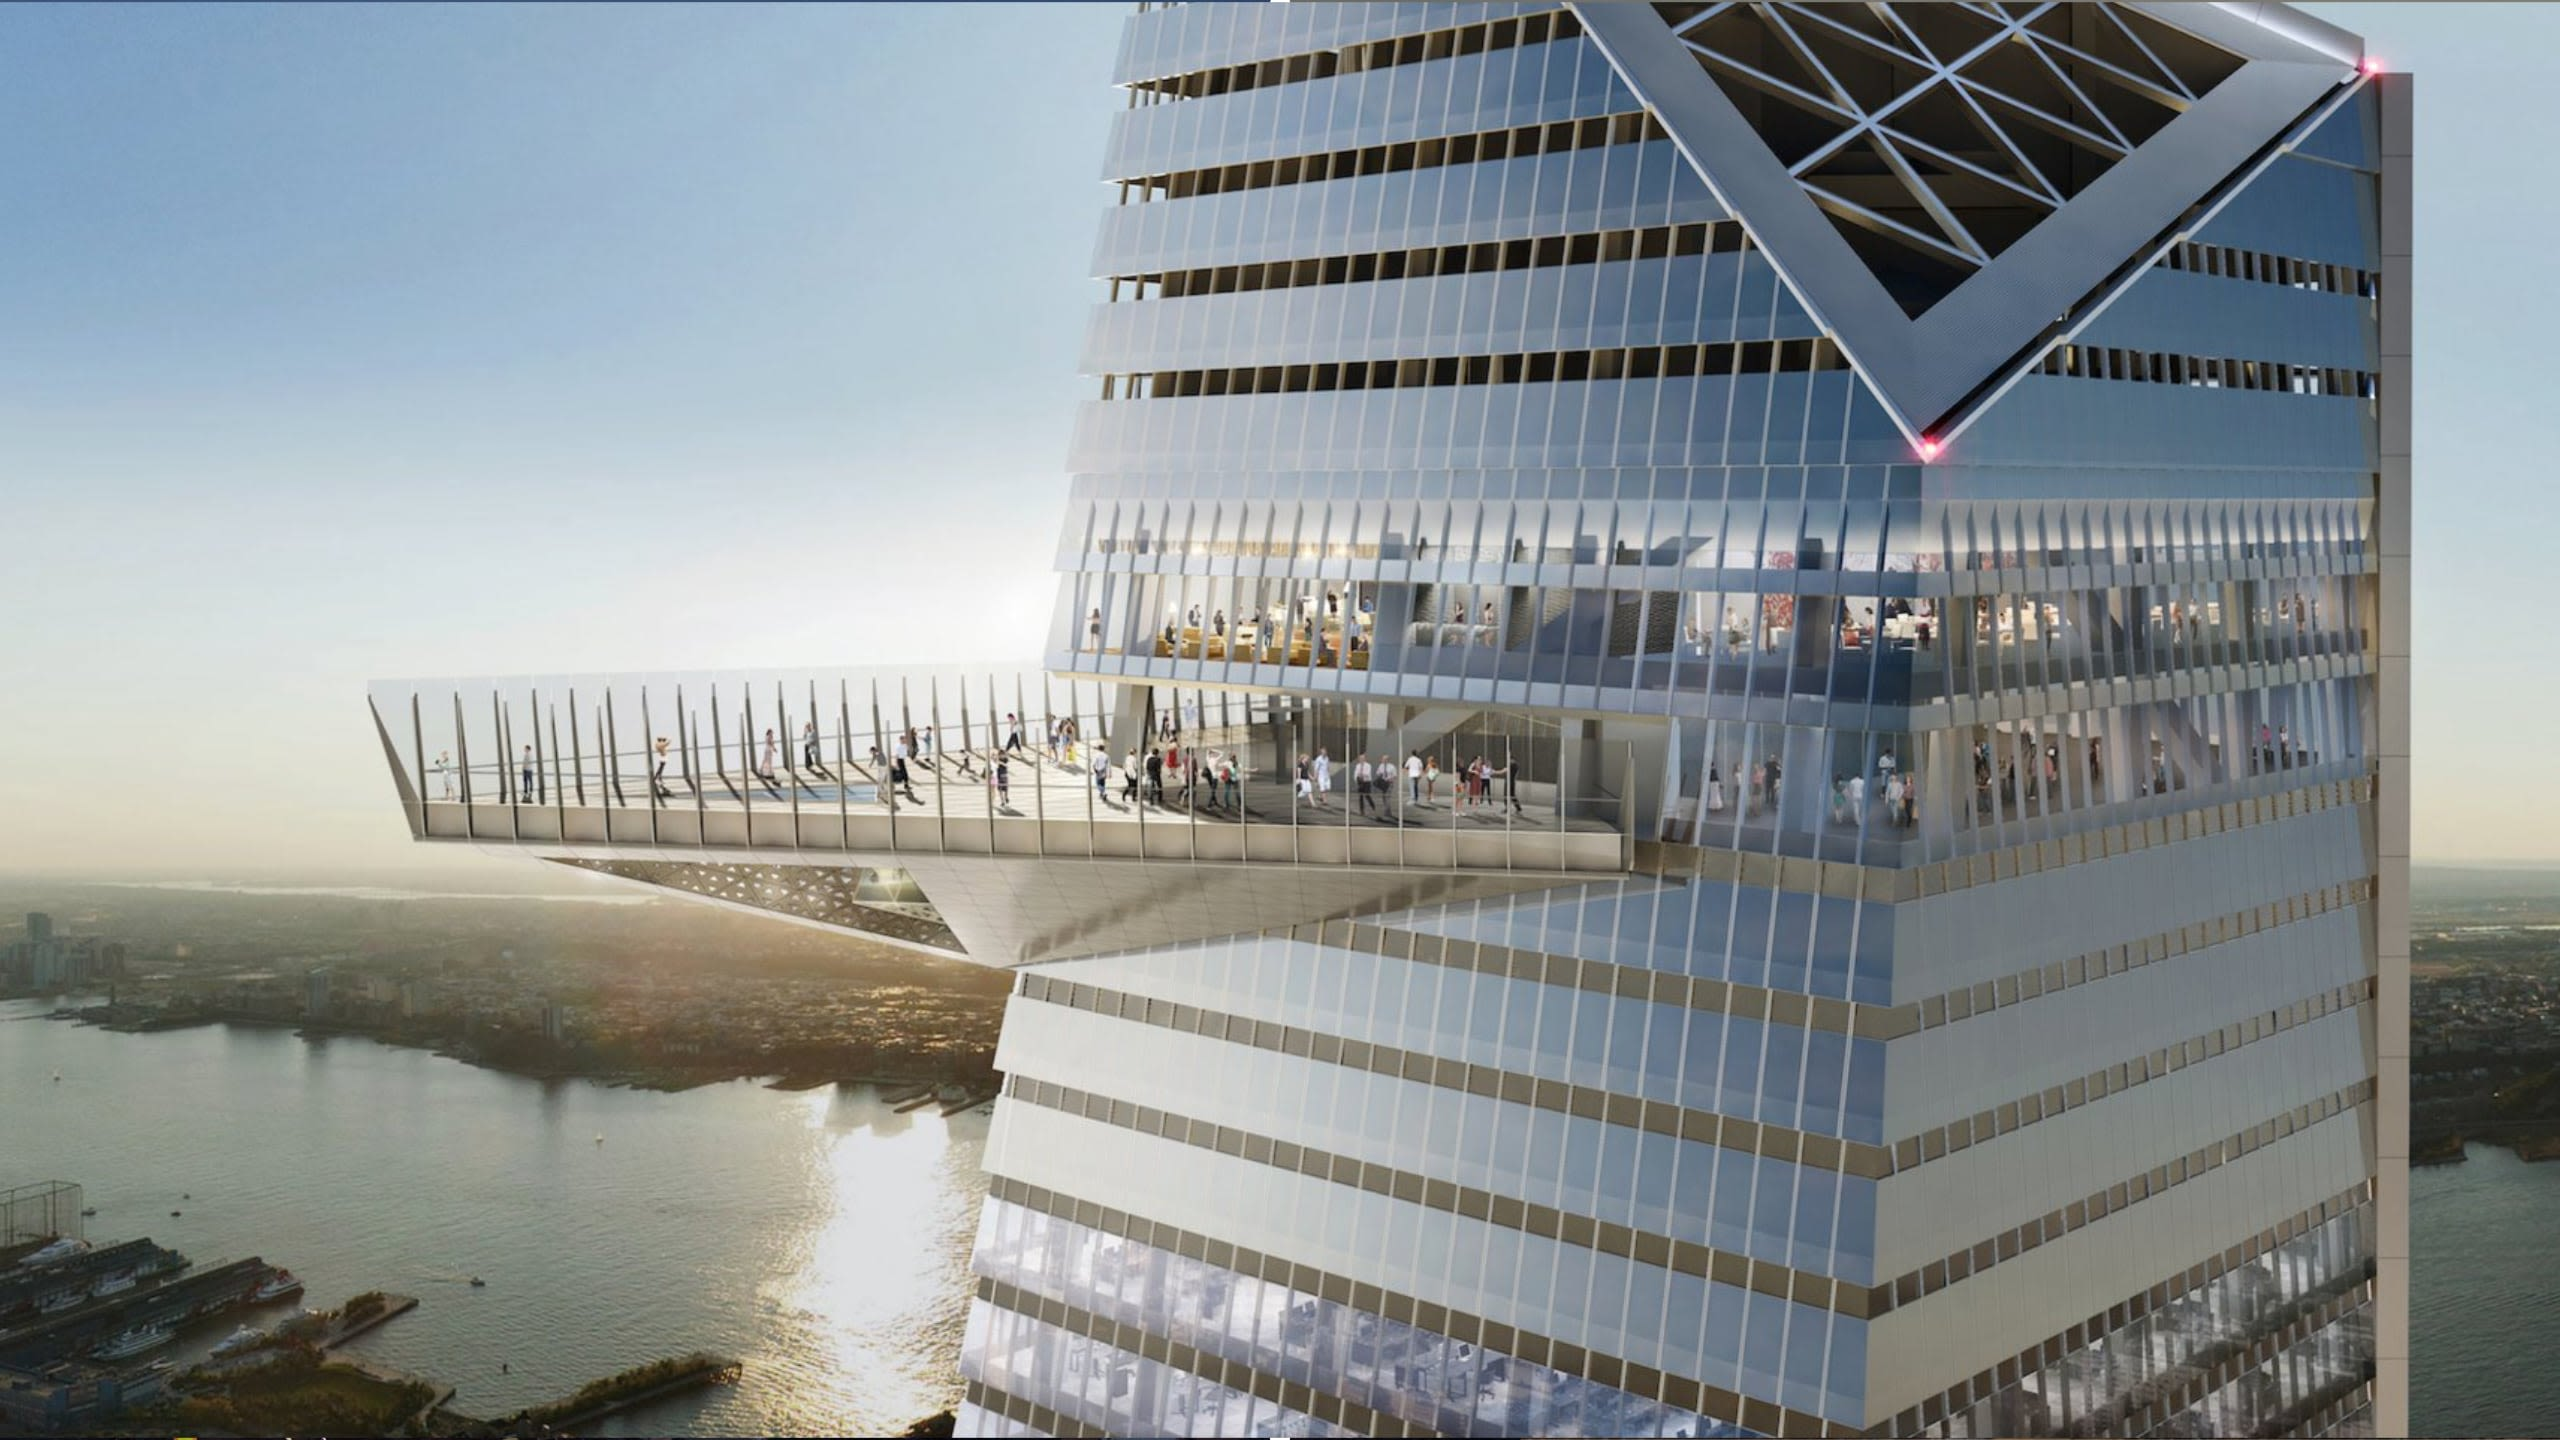 The tallest observation deck in New York will be more than 305 m above the ground on the eastern side of 30 Hudson Yards.